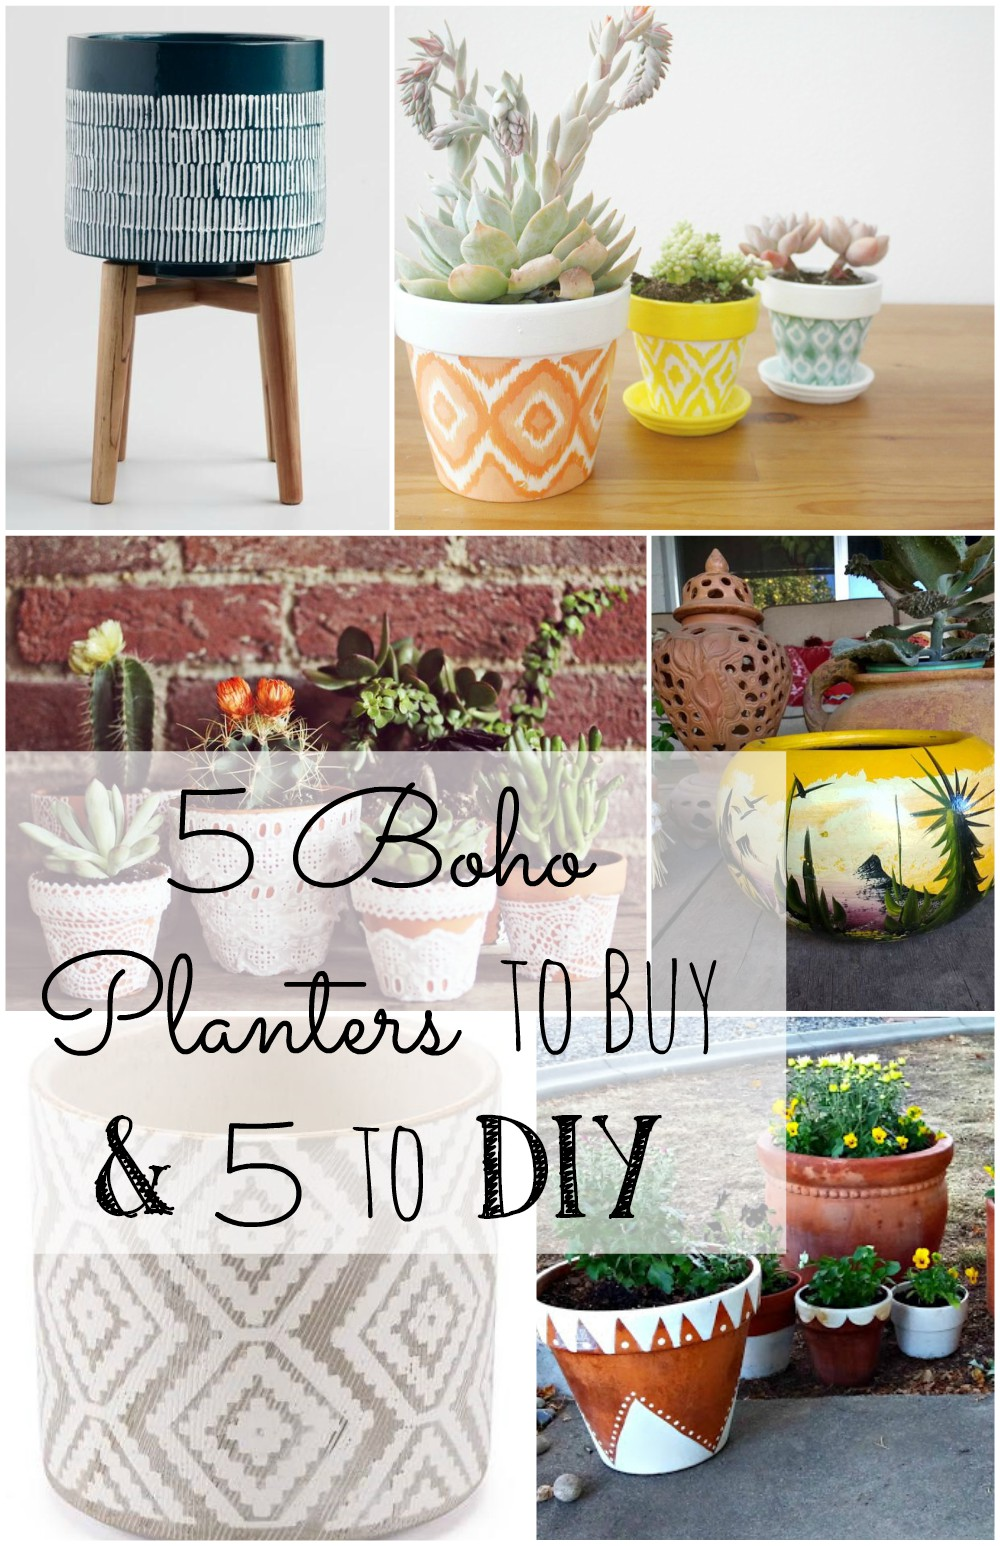 A collection of Boho planters to buy OR DIY!